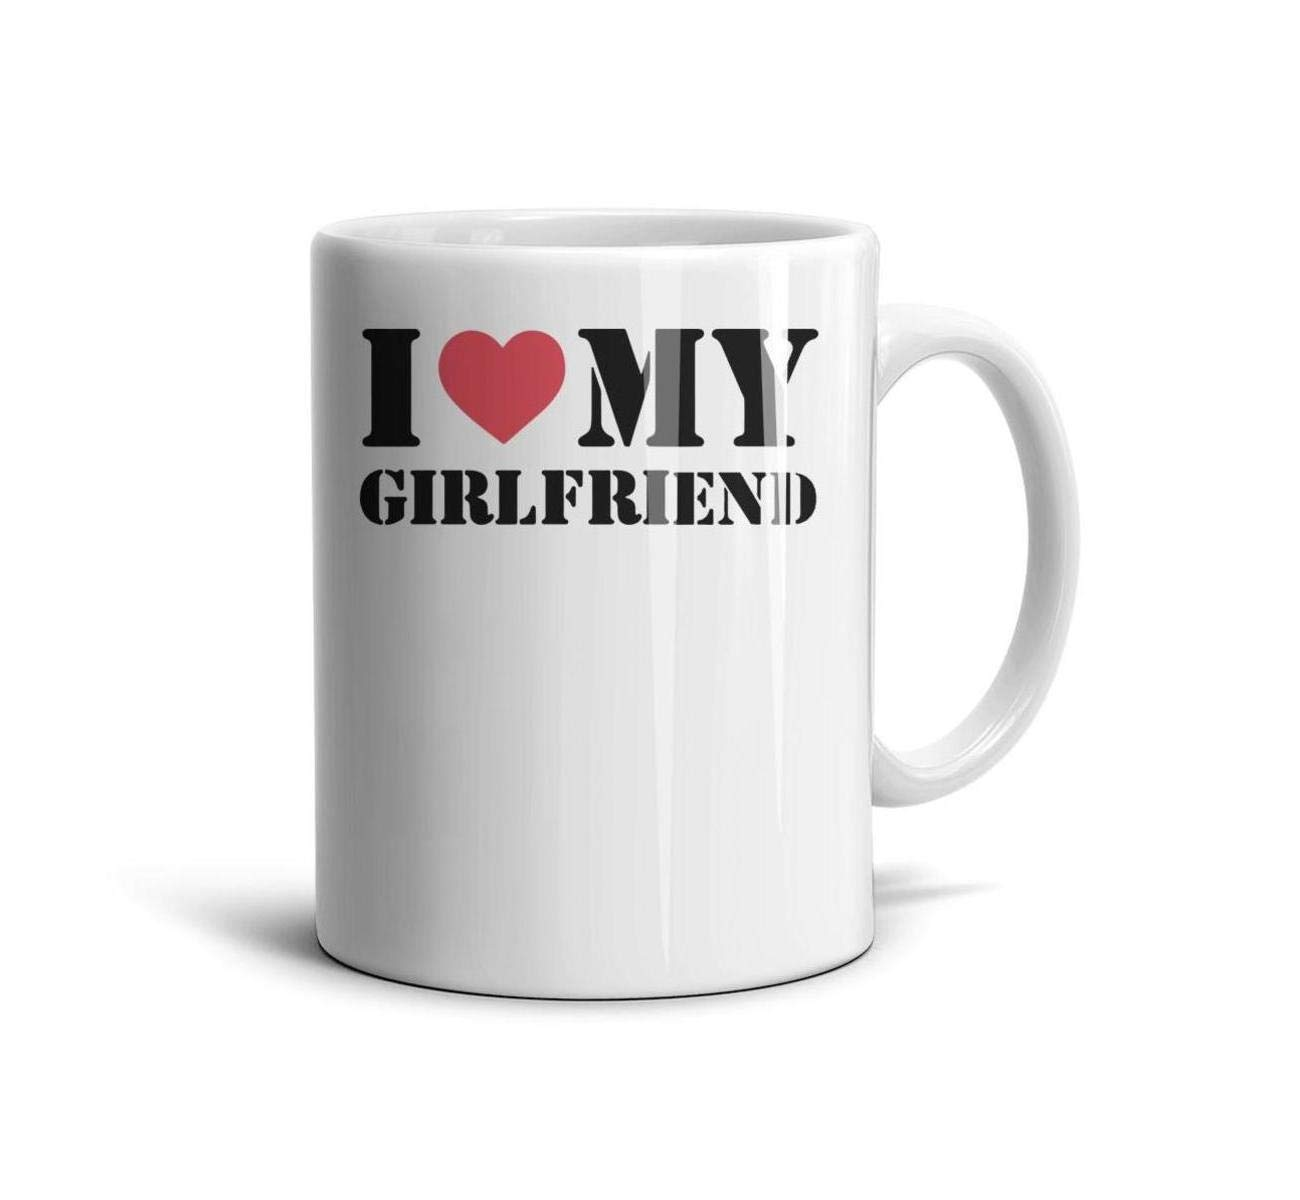 devrrssx I Love My Girlfriend Cool Mugs Great Gift 1 Set for Office and Home for husbandMaximum Capacity 13.5oz